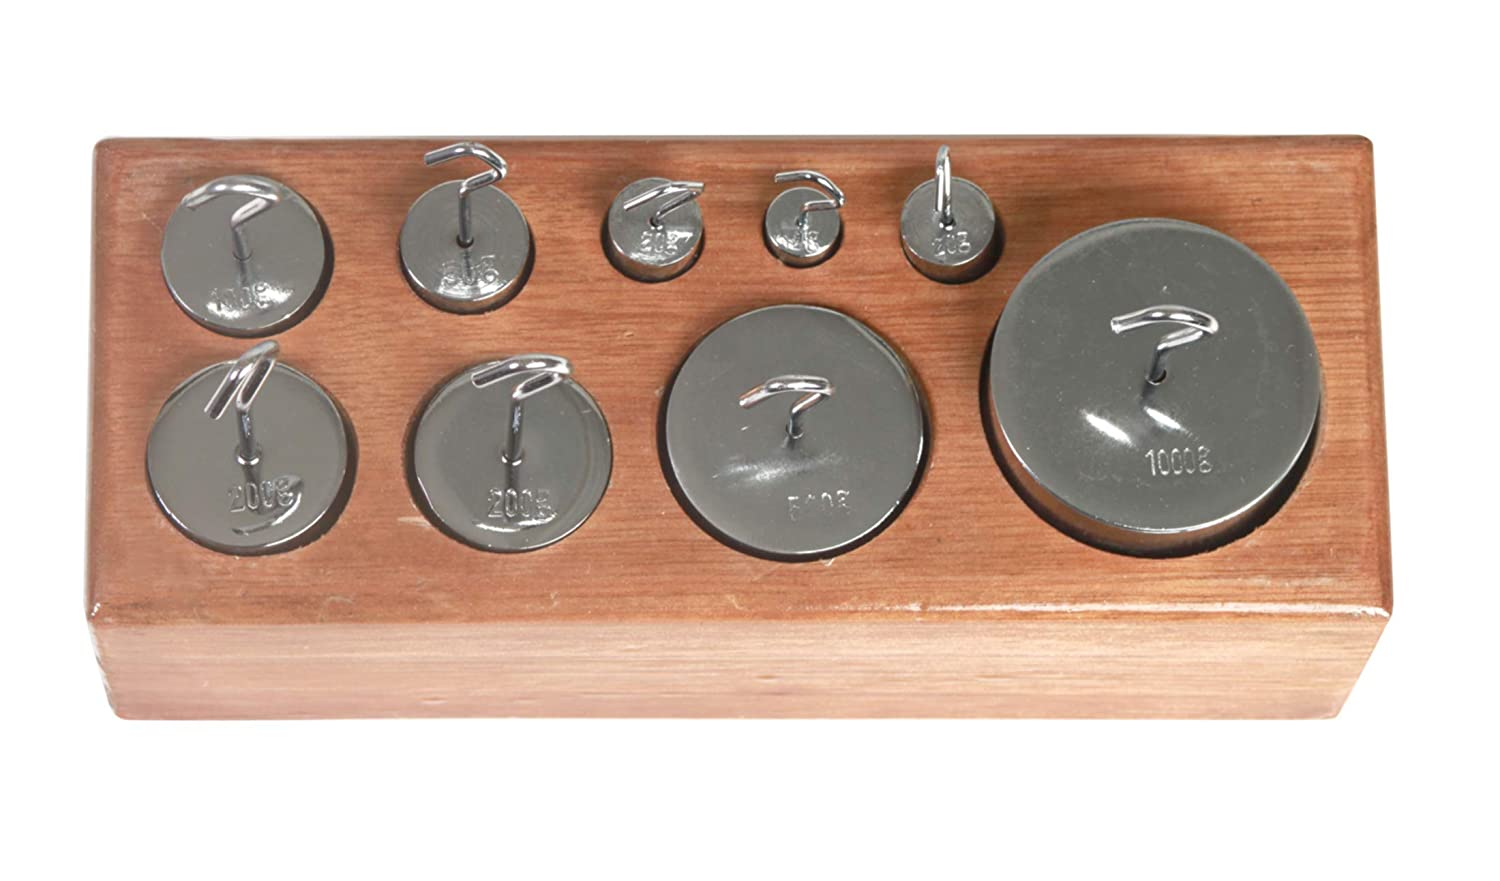 Metric American Educational Nickel-Plated Brass Hooked Weight Set